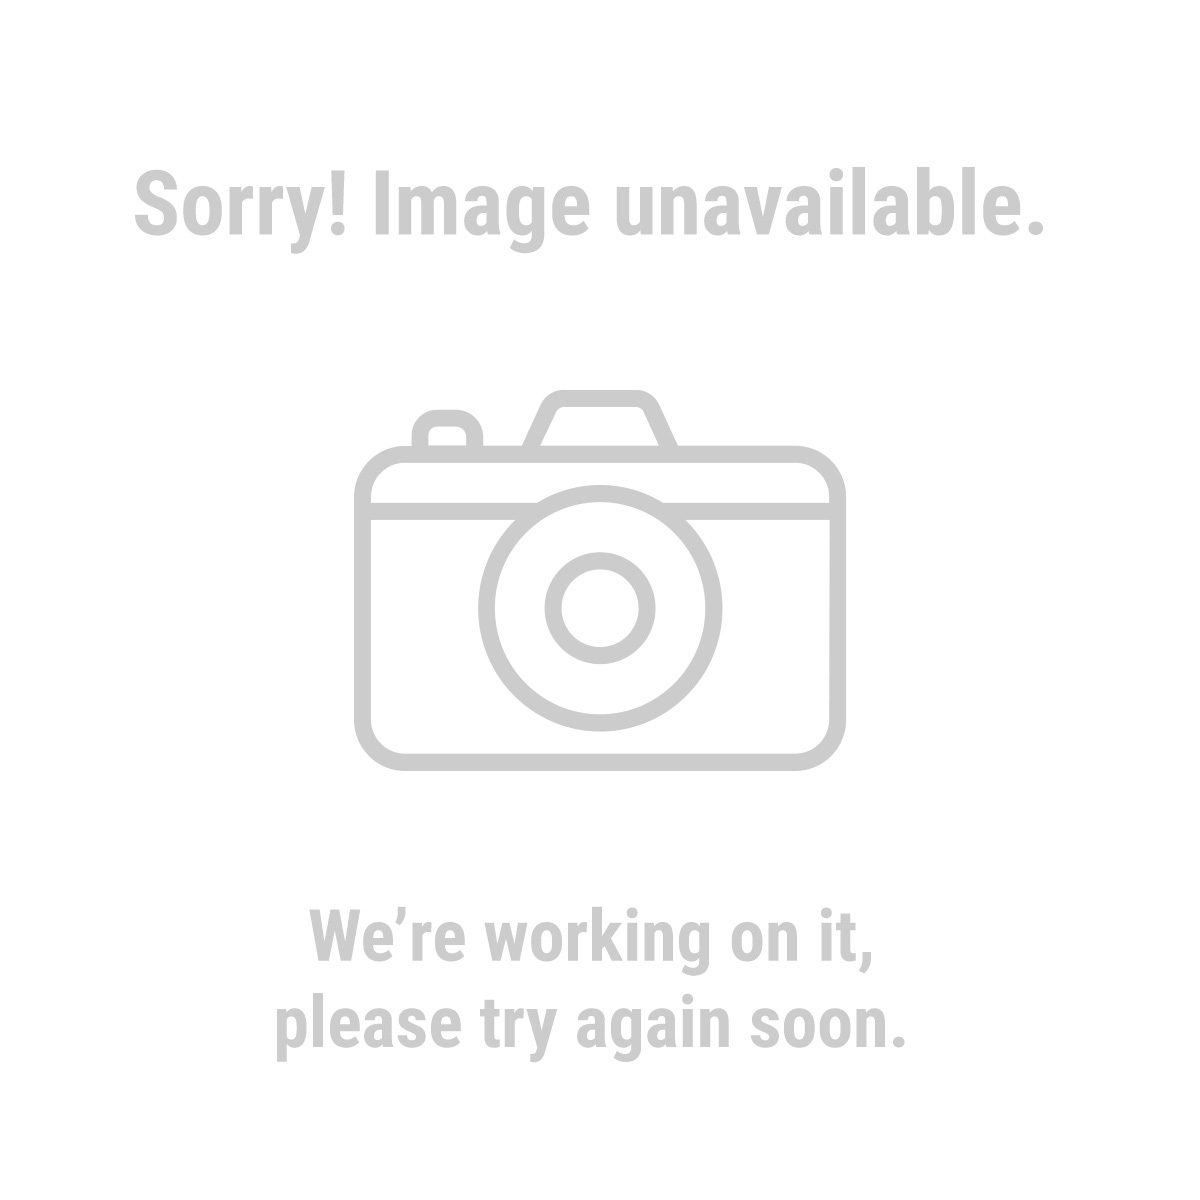 212 cc OHV Horizontal Shaft Gas Engine - EPA & CARB